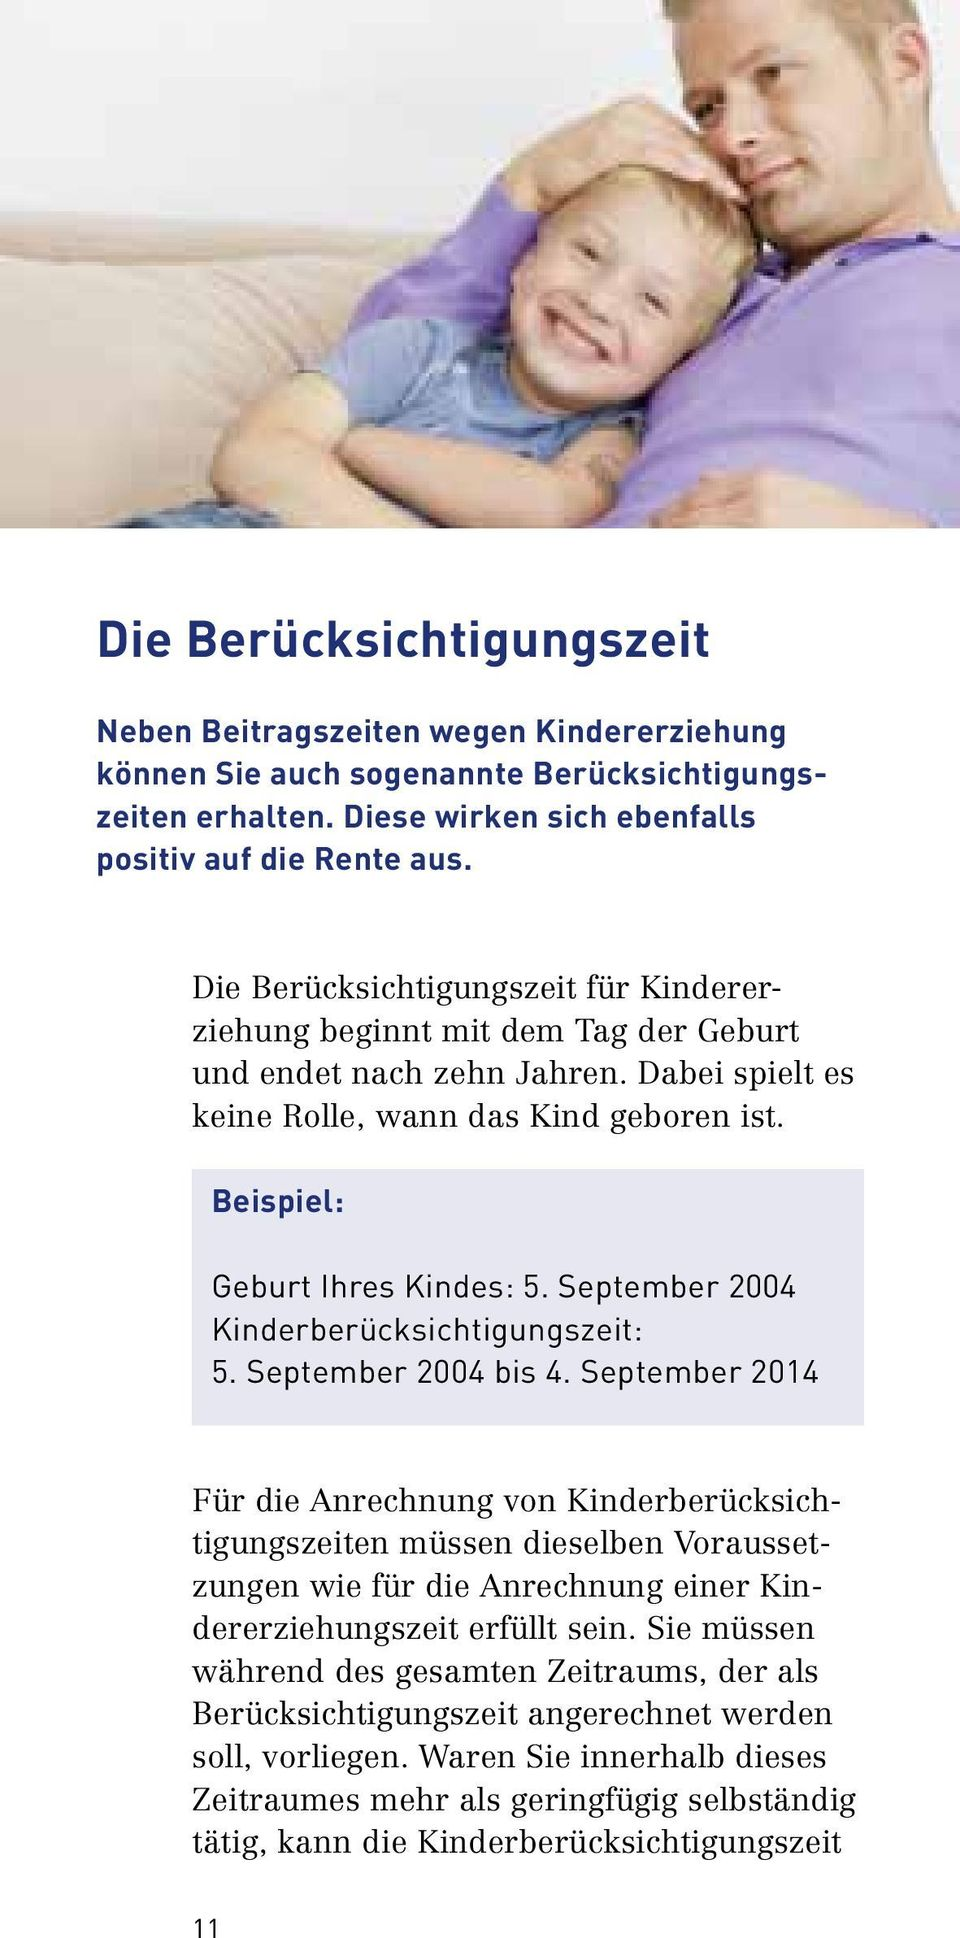 September 2004 Kinderberücksichtigungszeit: 5. September 2004 bis 4.